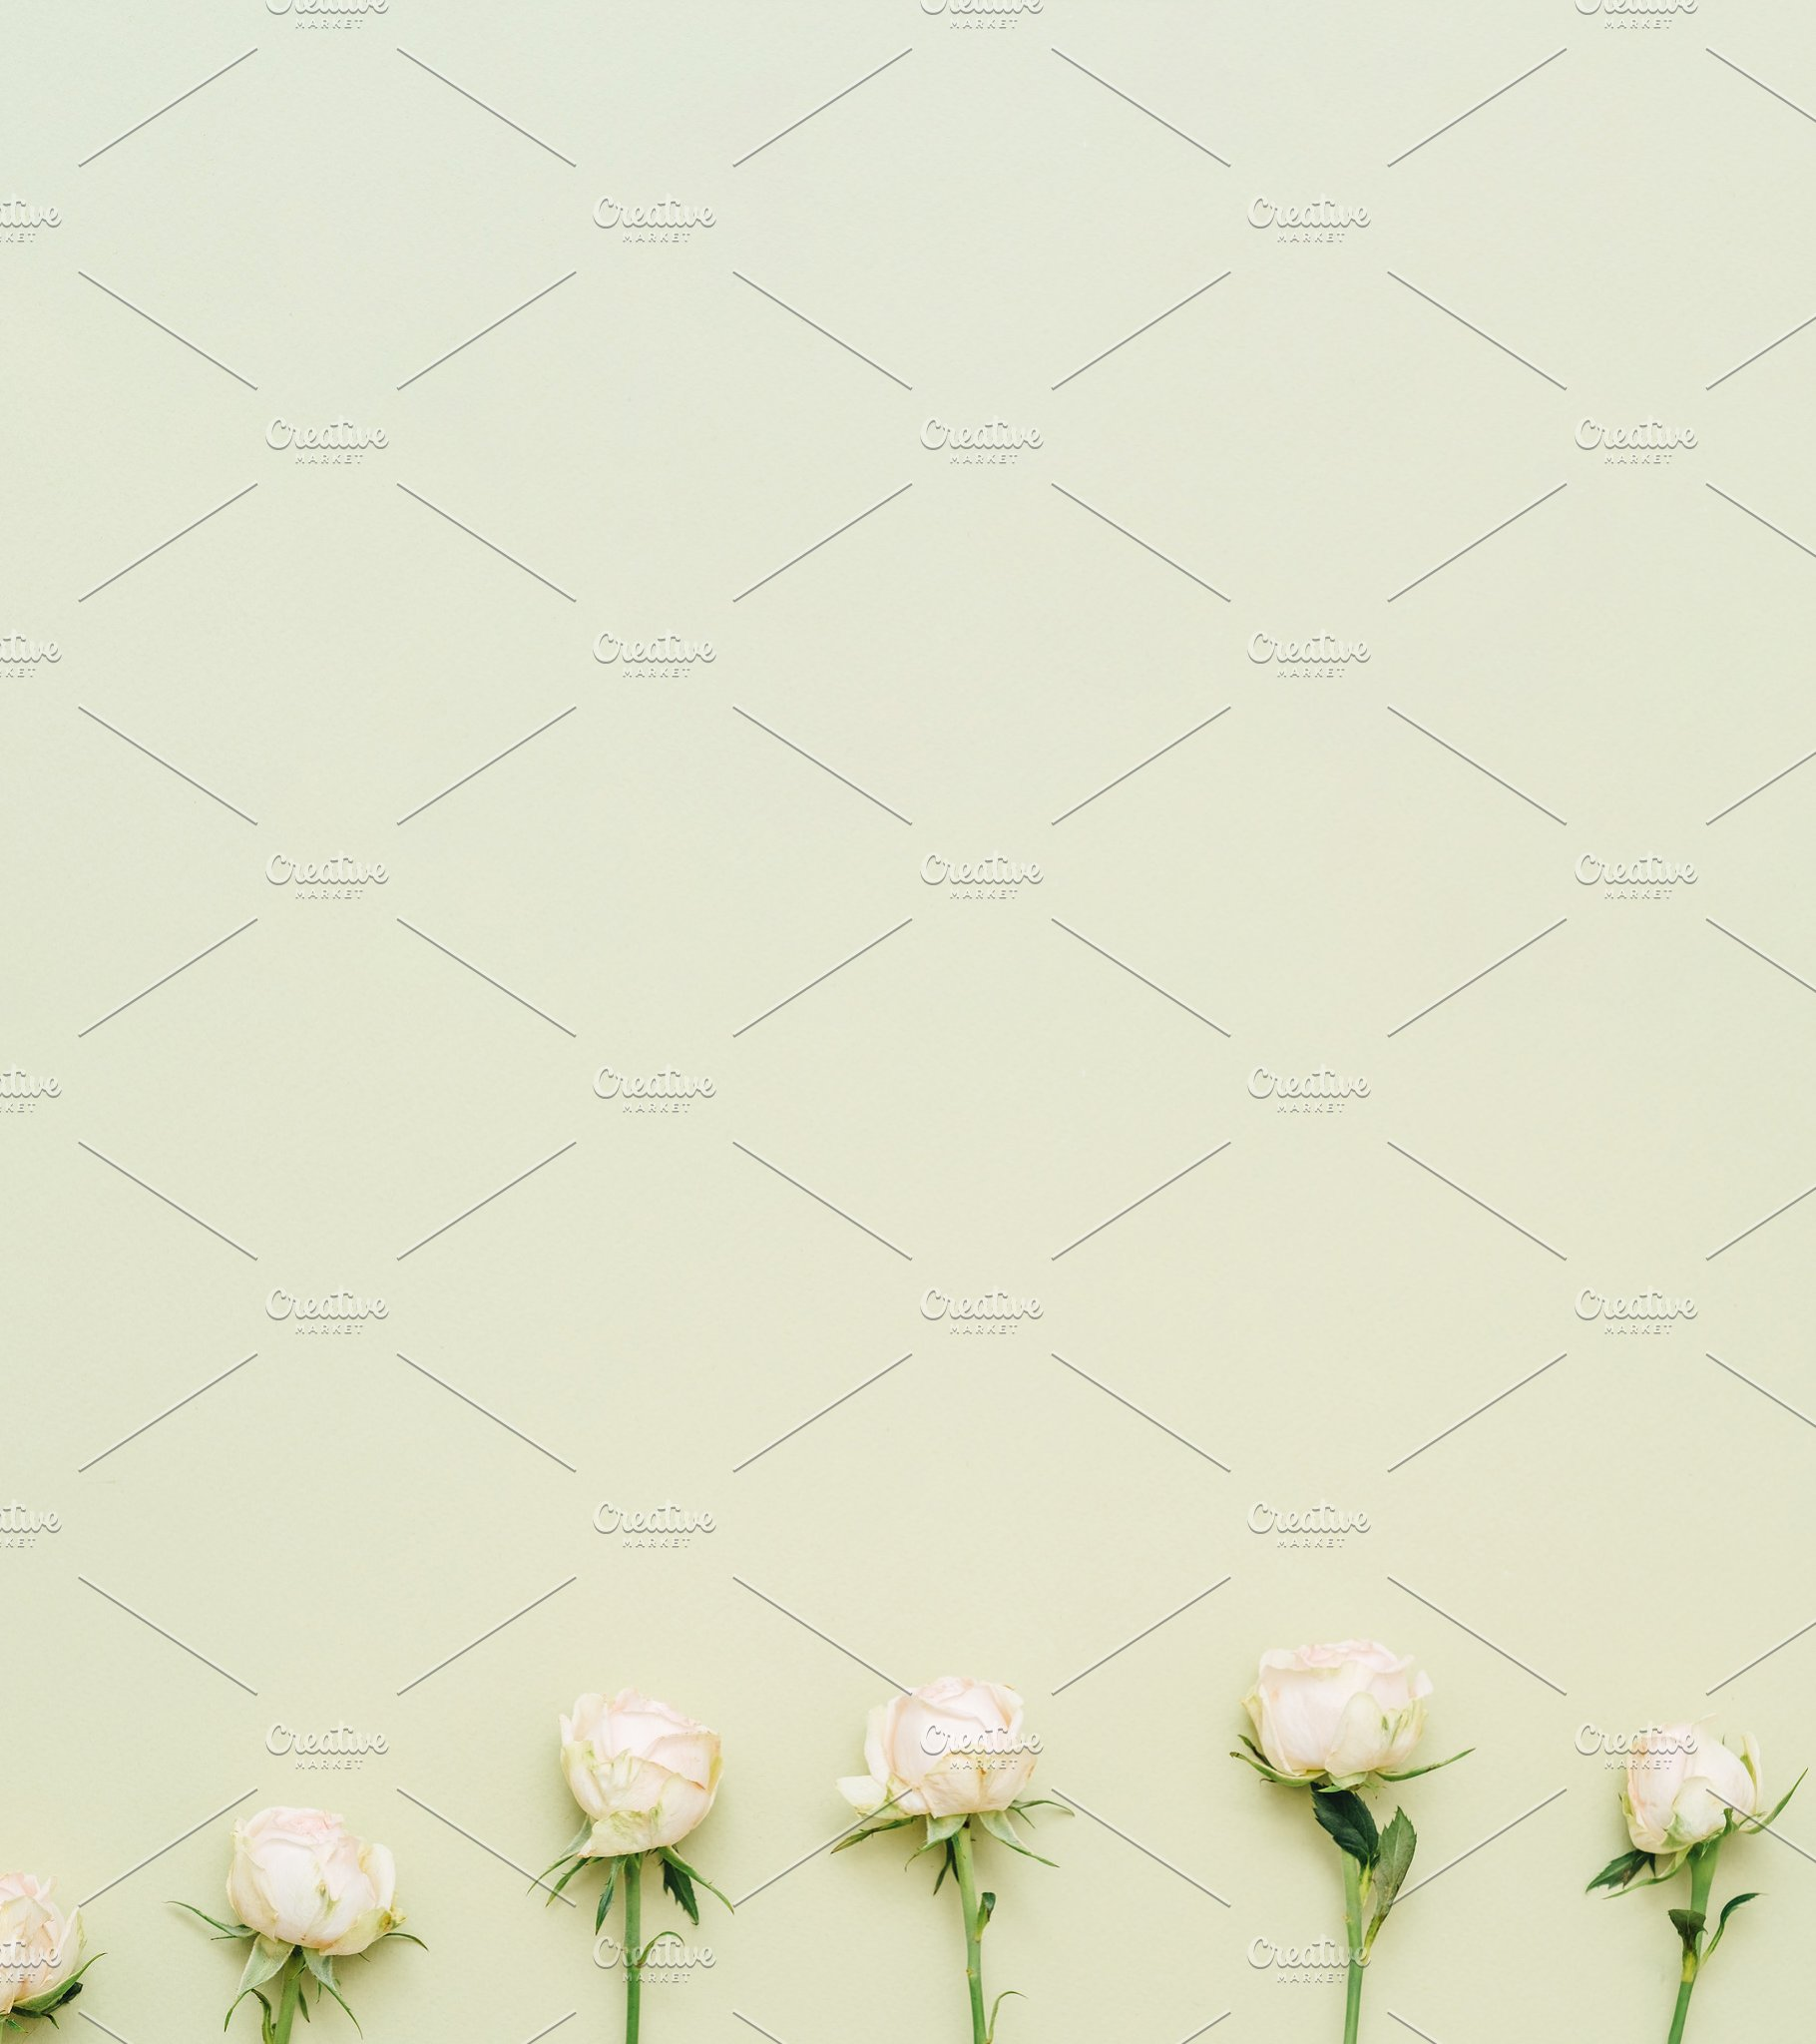 Floral Minimalist Background Natural High Quality Stock Photos